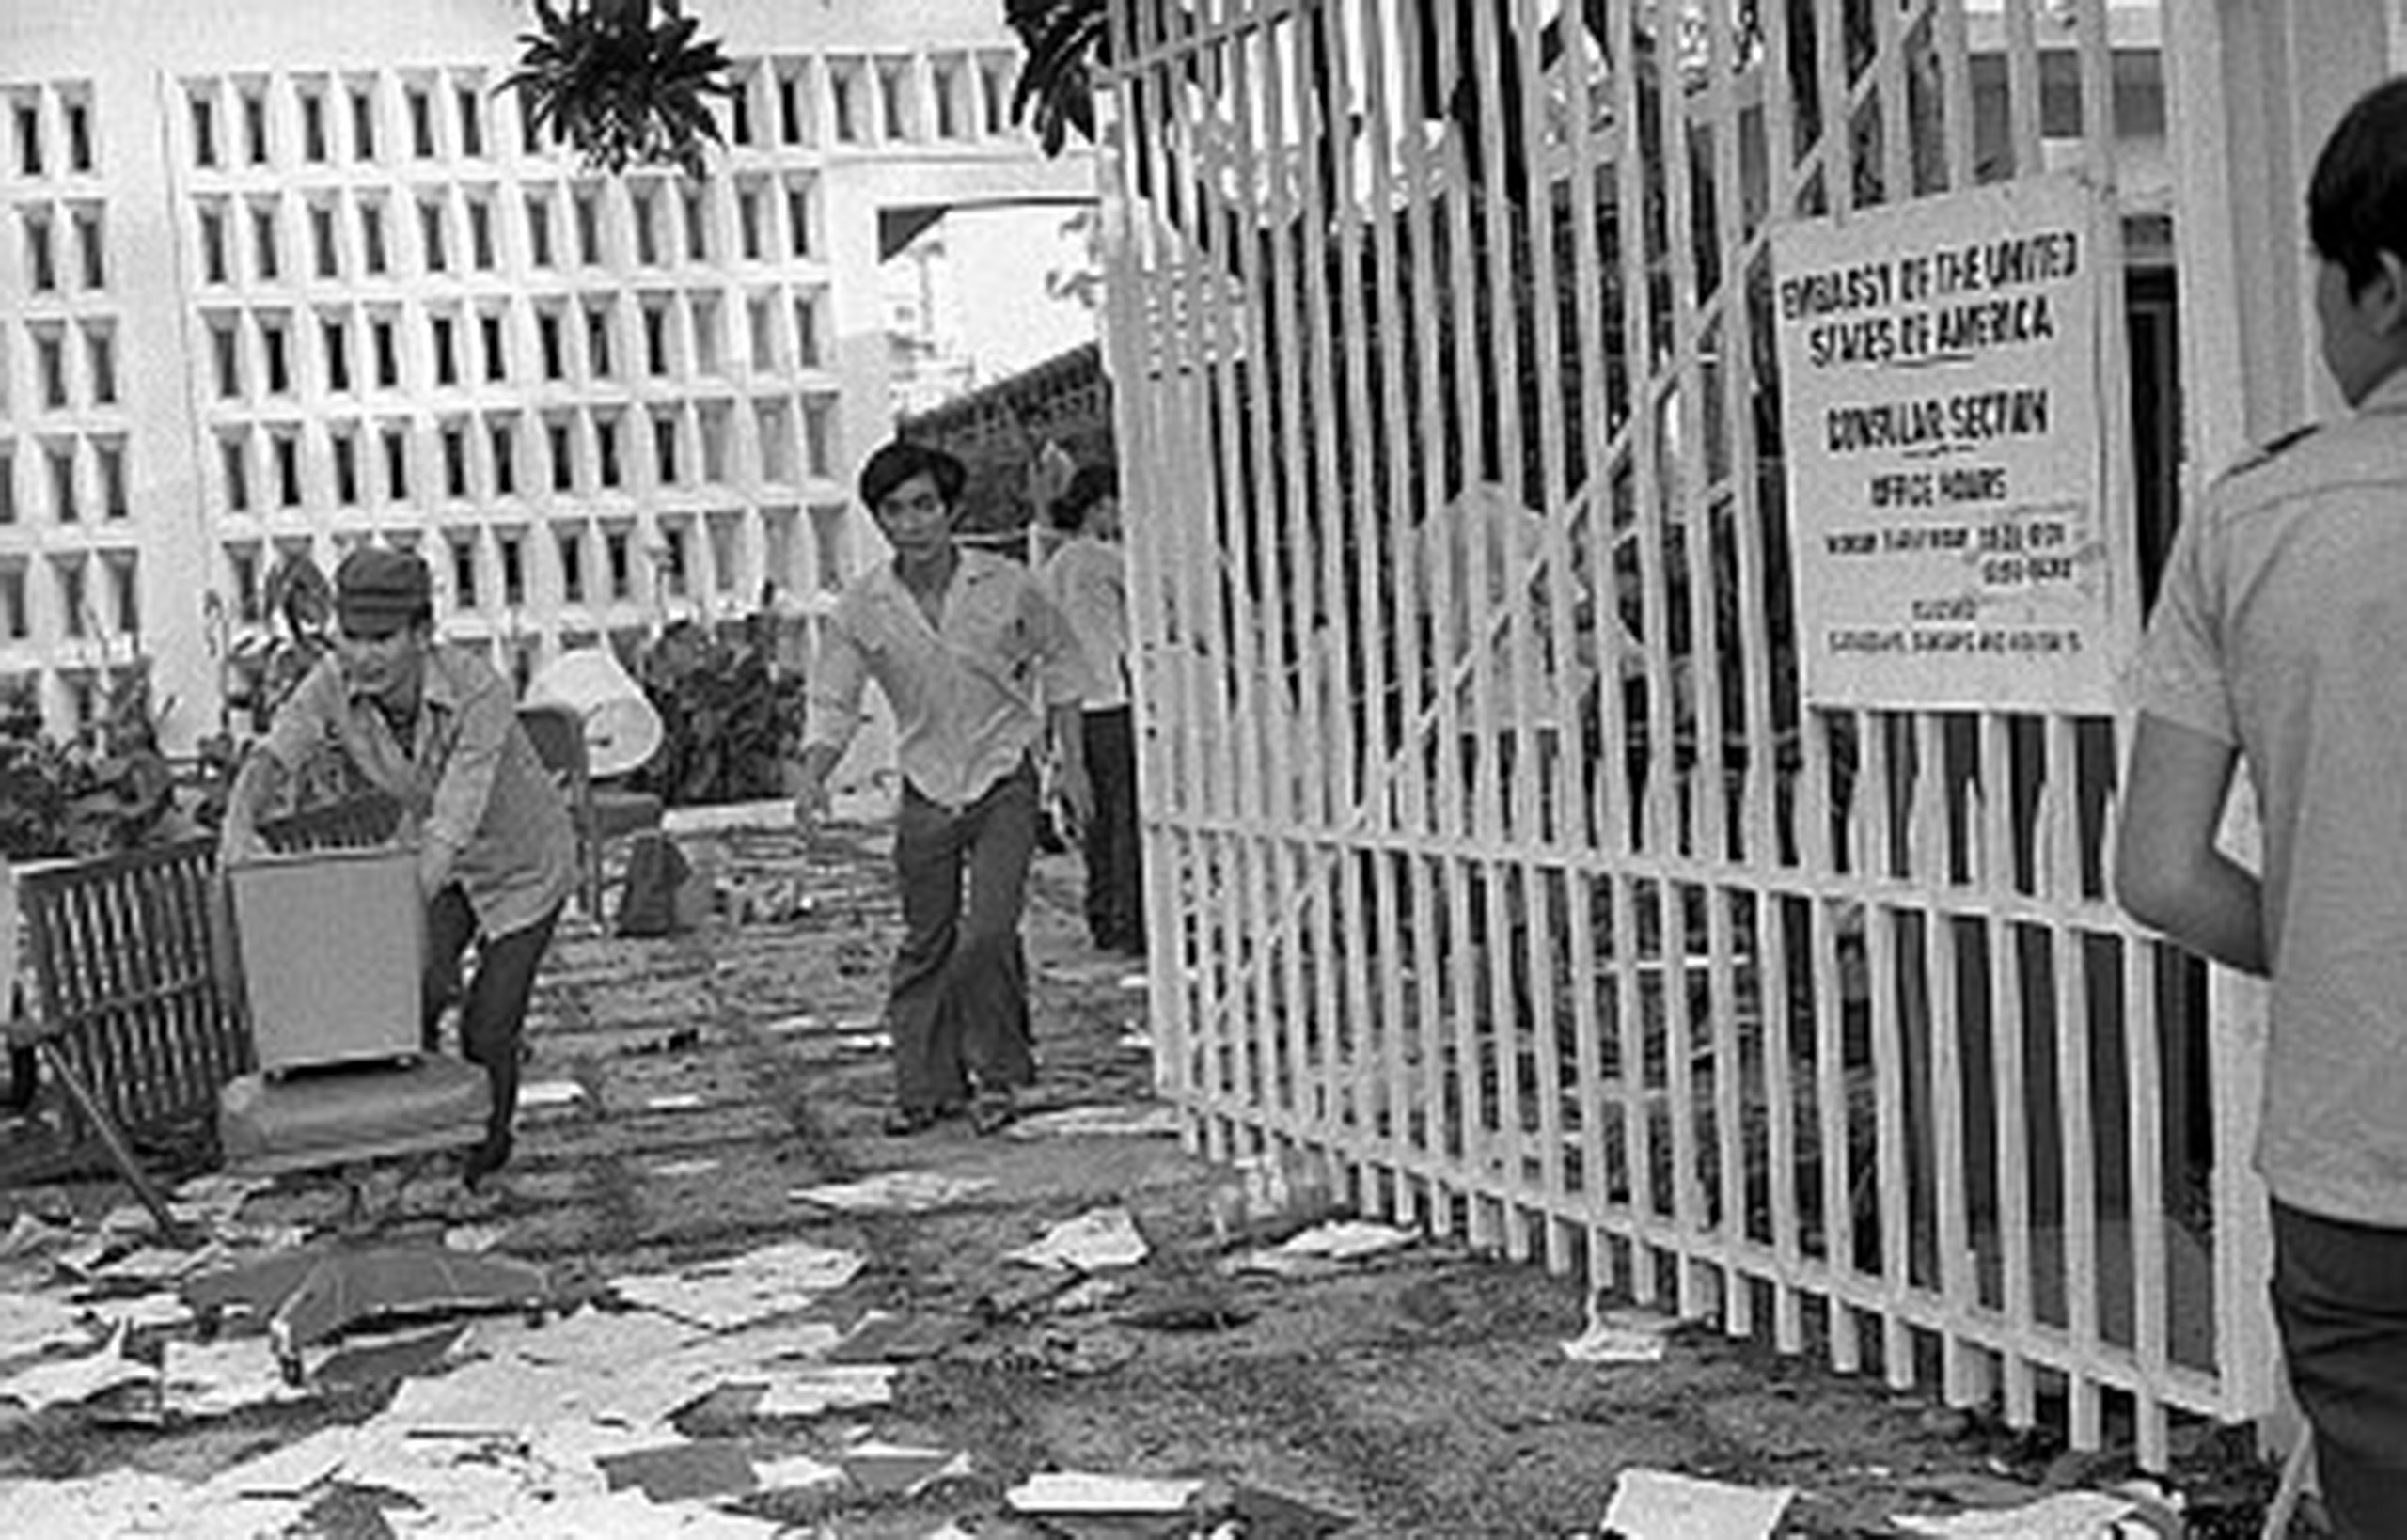 Right after the U.S. Embassy security guards were evacuated, South Vietnamese civilians moved into the embassy and began looting. Even though a 24-hour curfew had been imposed on the city, the streets were filled with people carrying off all they could steal.